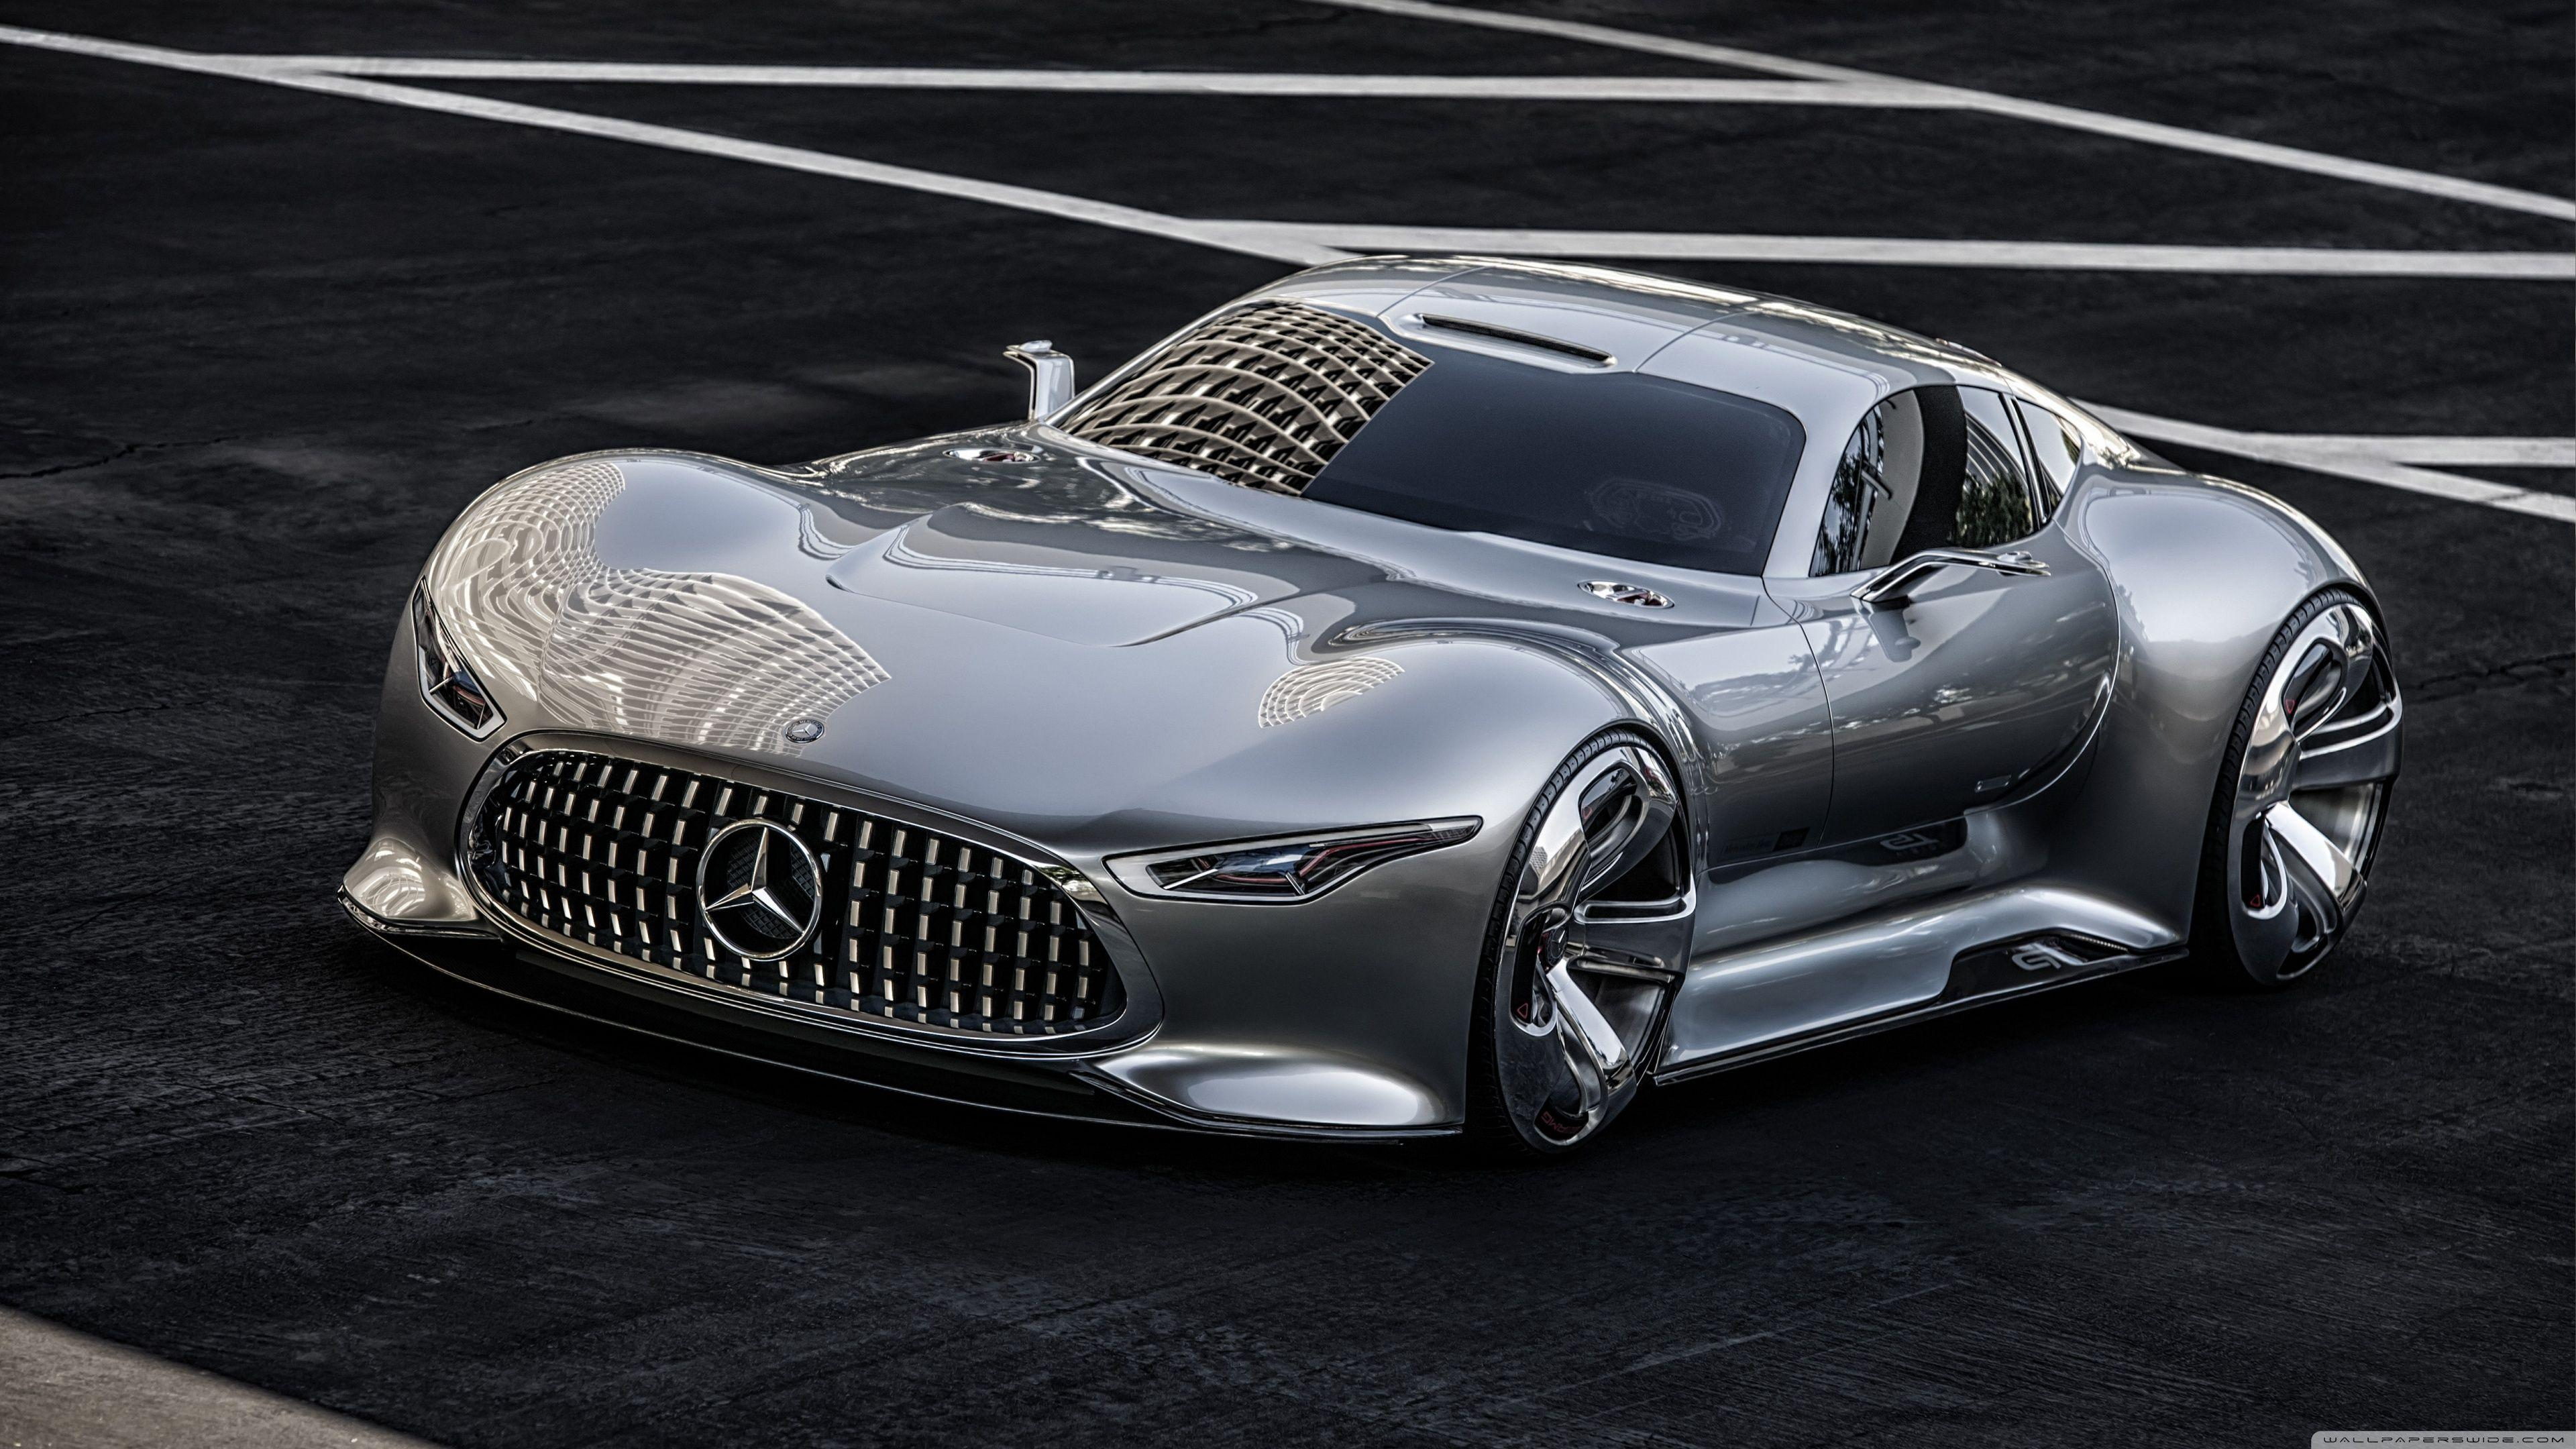 Mercedes Benz AMG Vision Supercar HD desktop wallpapers